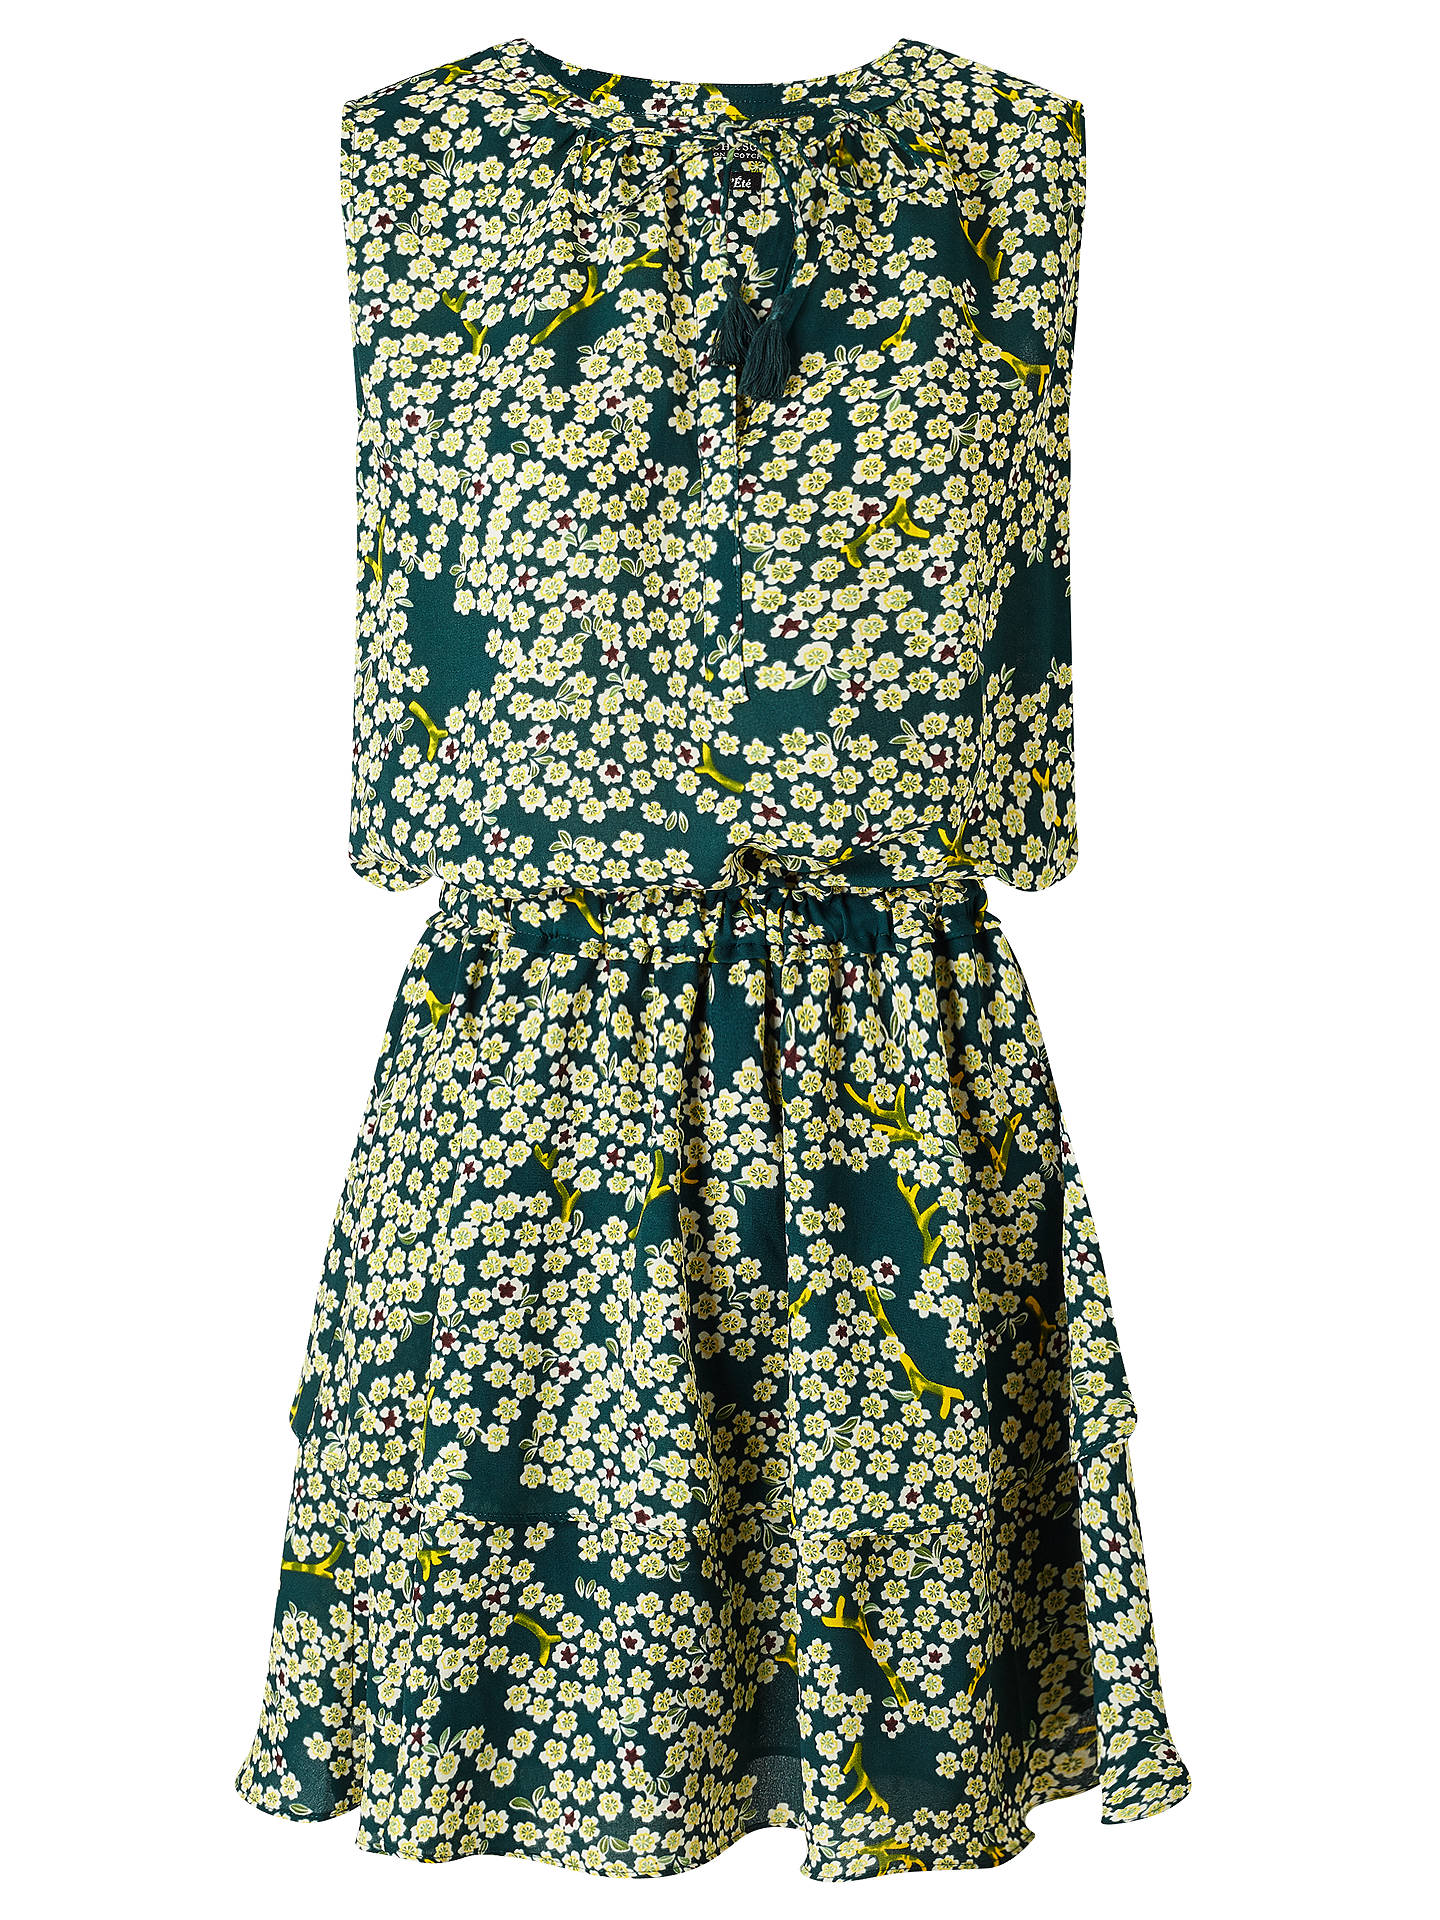 8237f8901e Buy Maison Scotch Floral Print Tiered Skirt Dress, Green/Multi, 8 Online at  ...